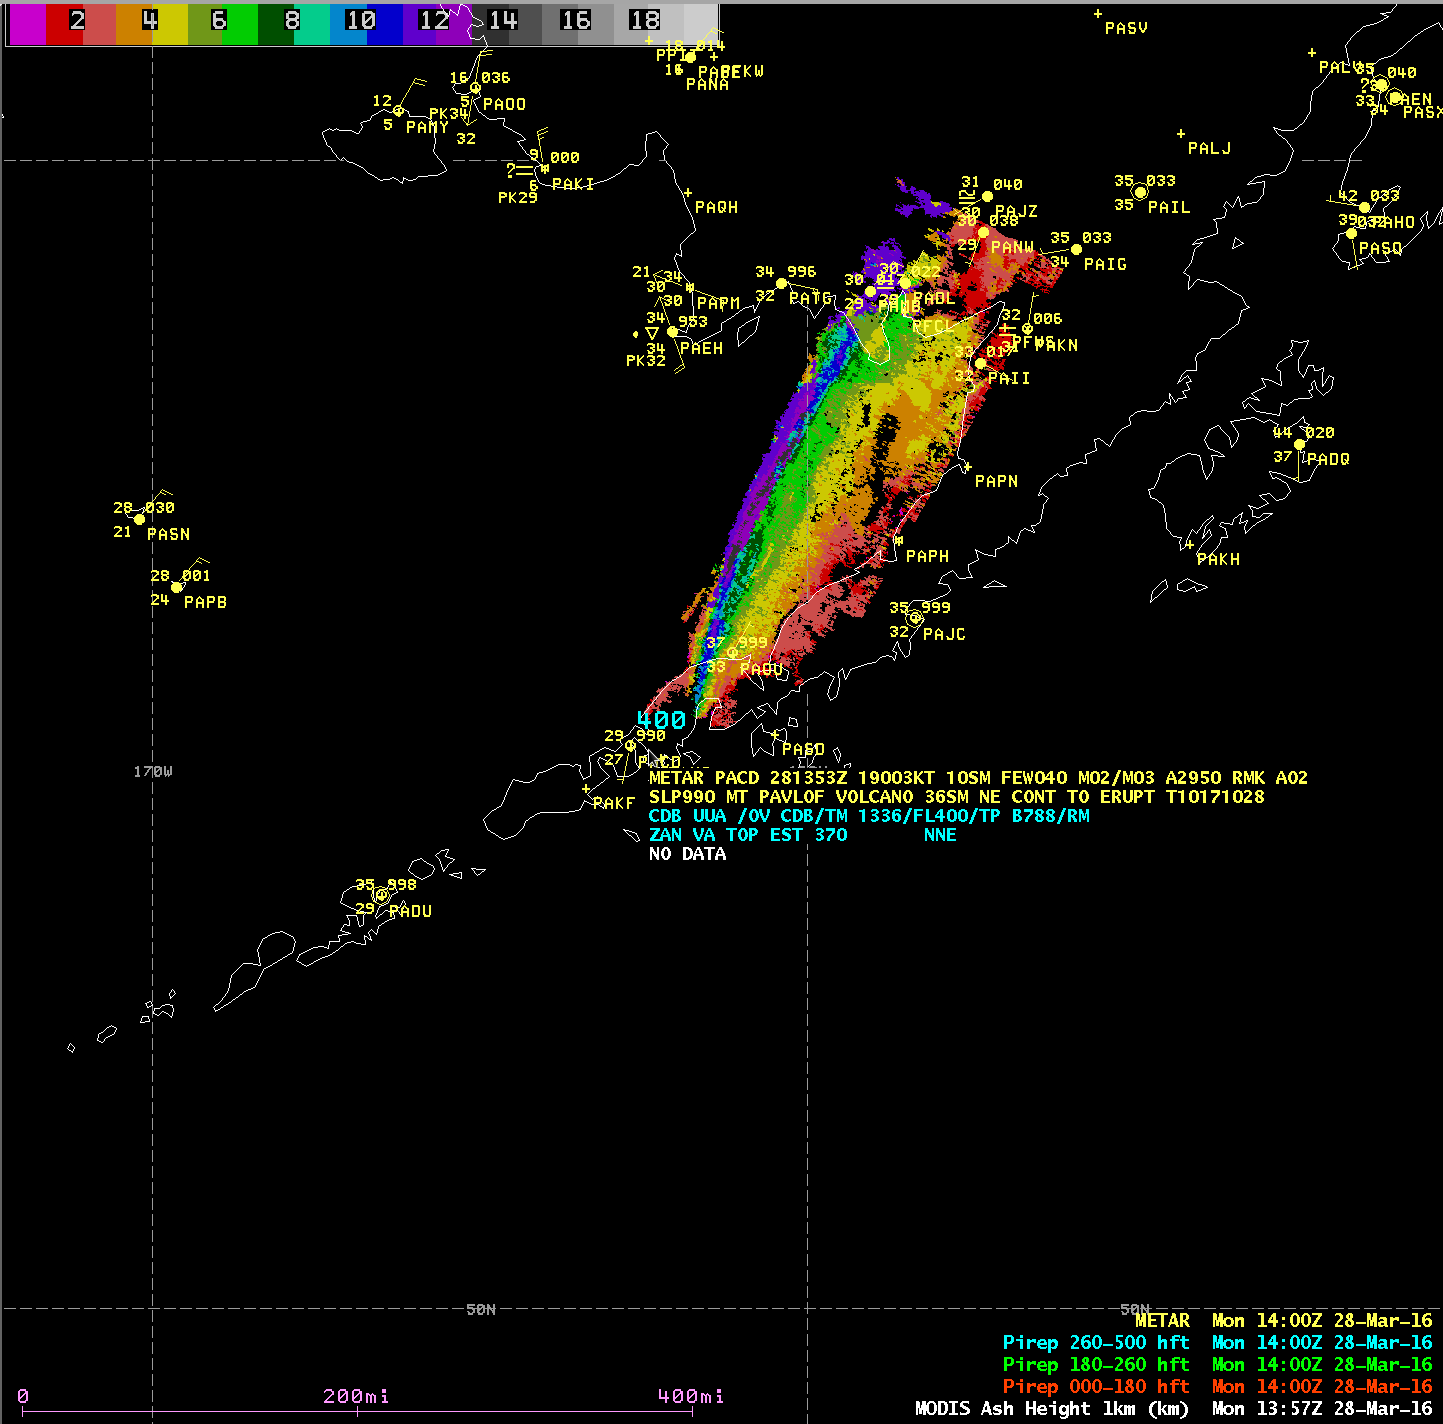 Aqua MODIS Ash Height product, with METAR surface reports and Pilot reports [click to enlarge]